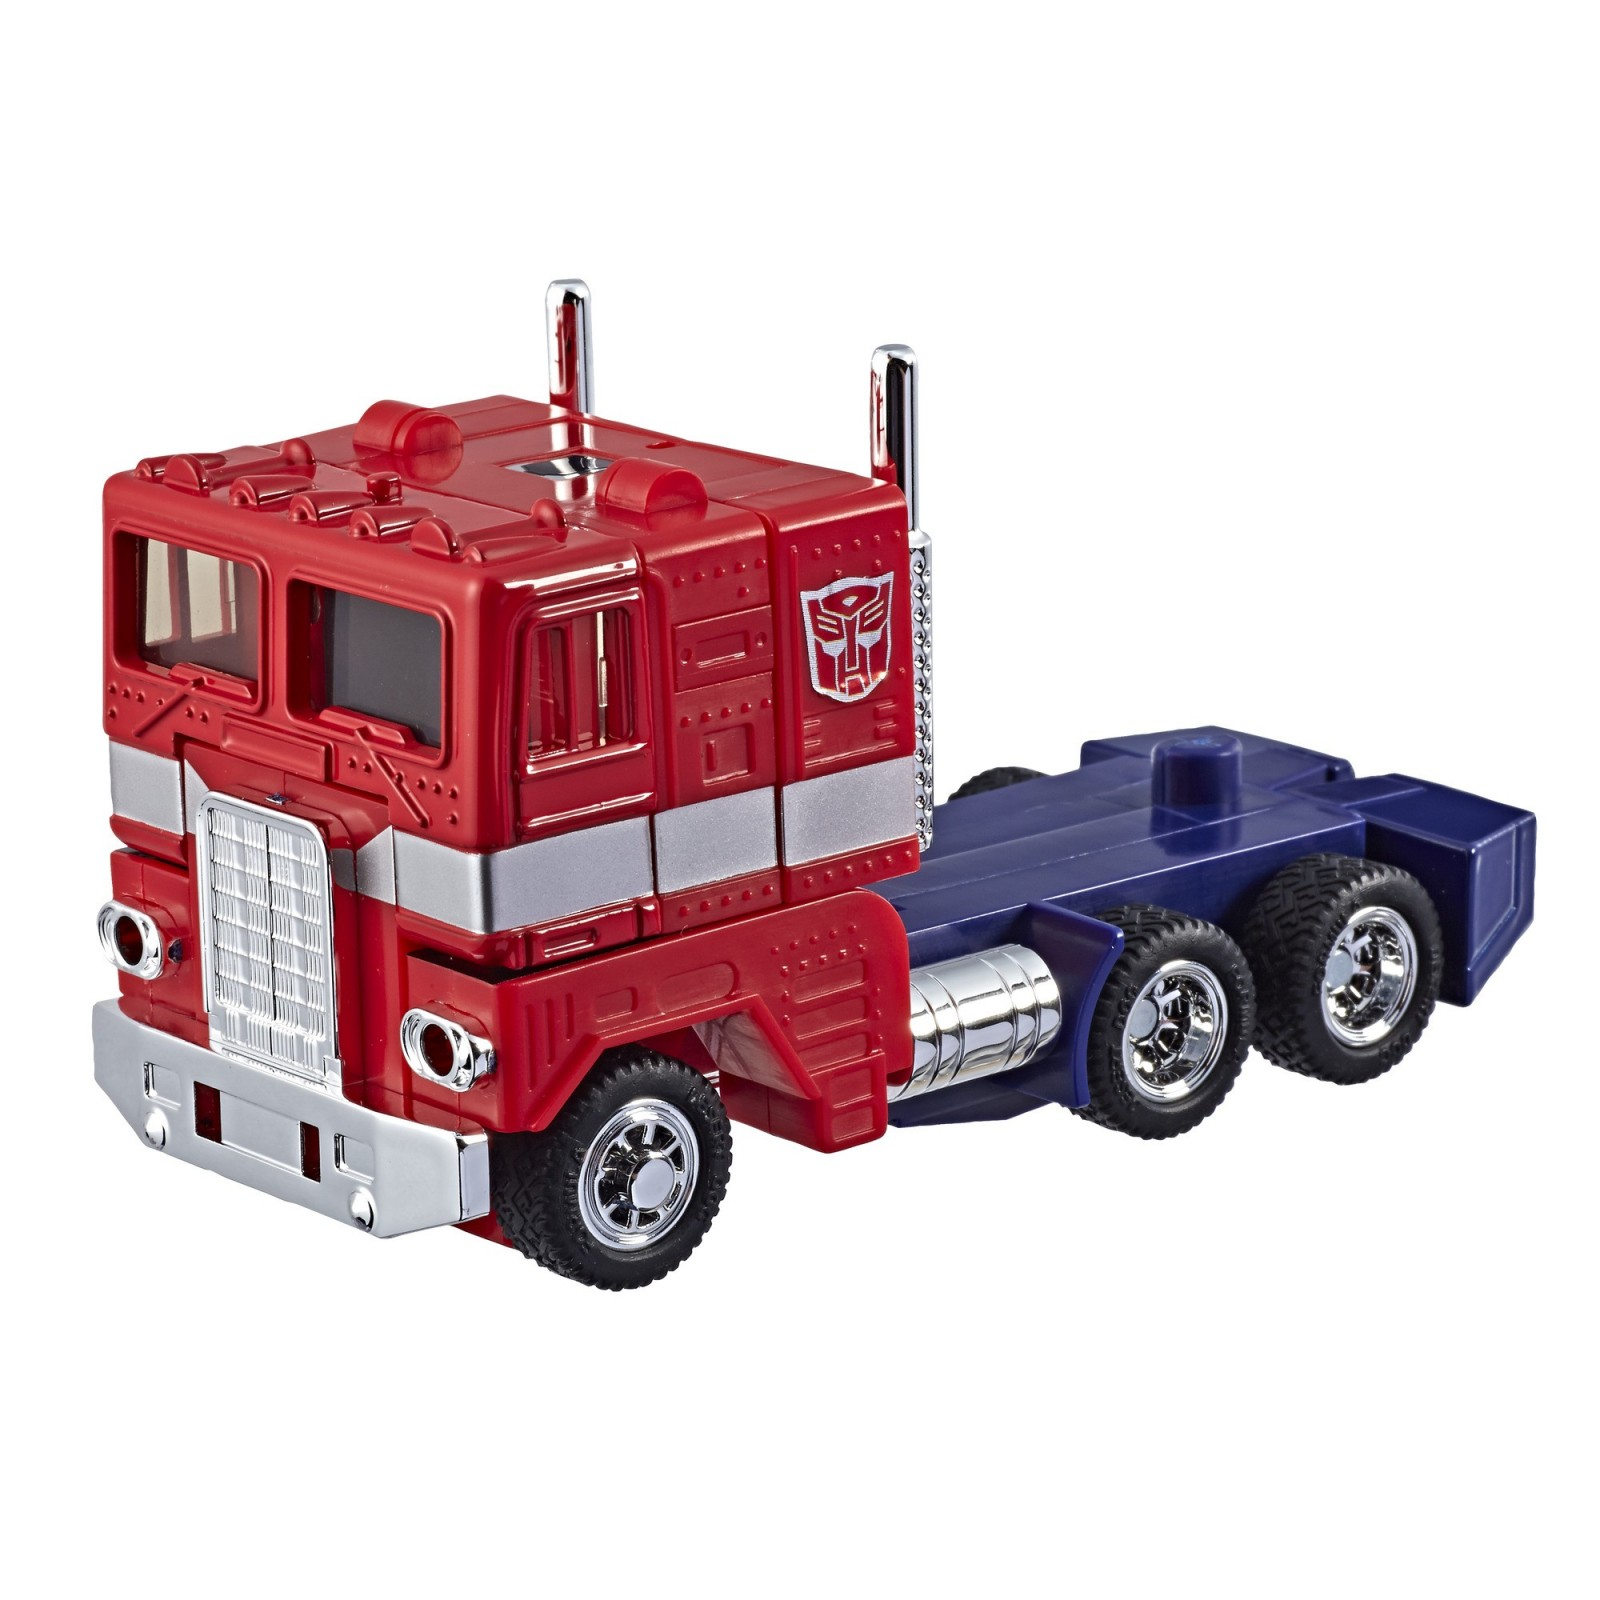 Transformers News: Transformers G1 Optimus Prime Reissue Marked Down to Just $25 at Walmart.com